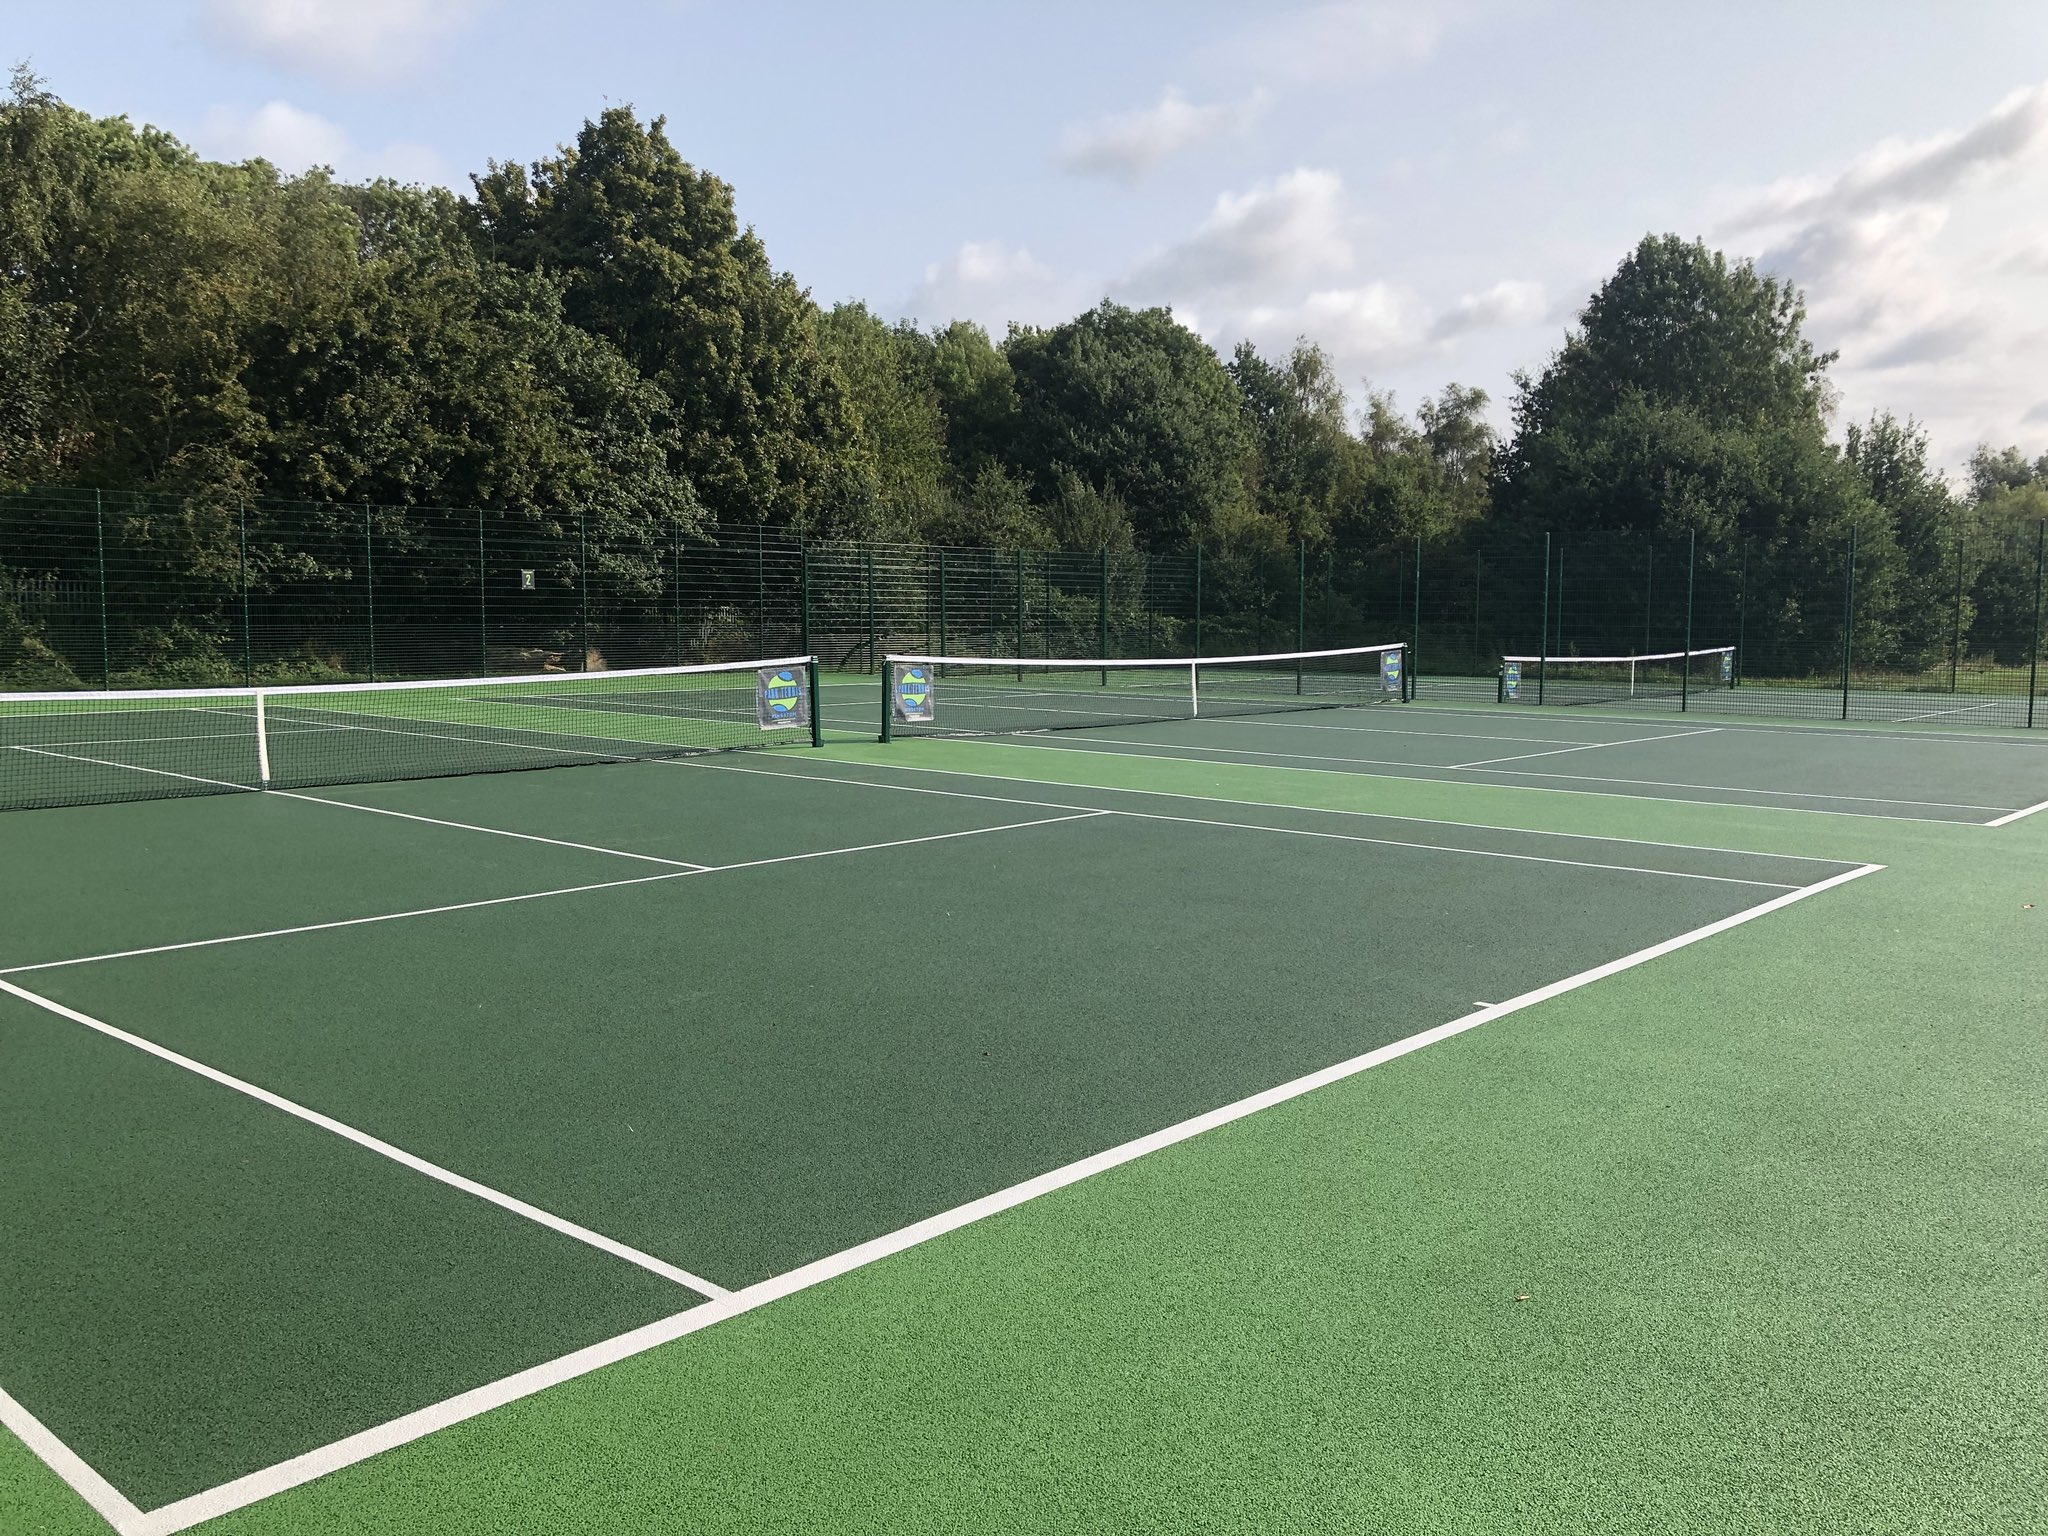 New tennis court surfaces at Surbiton Racket and Fitness Club, Beverly Park Site